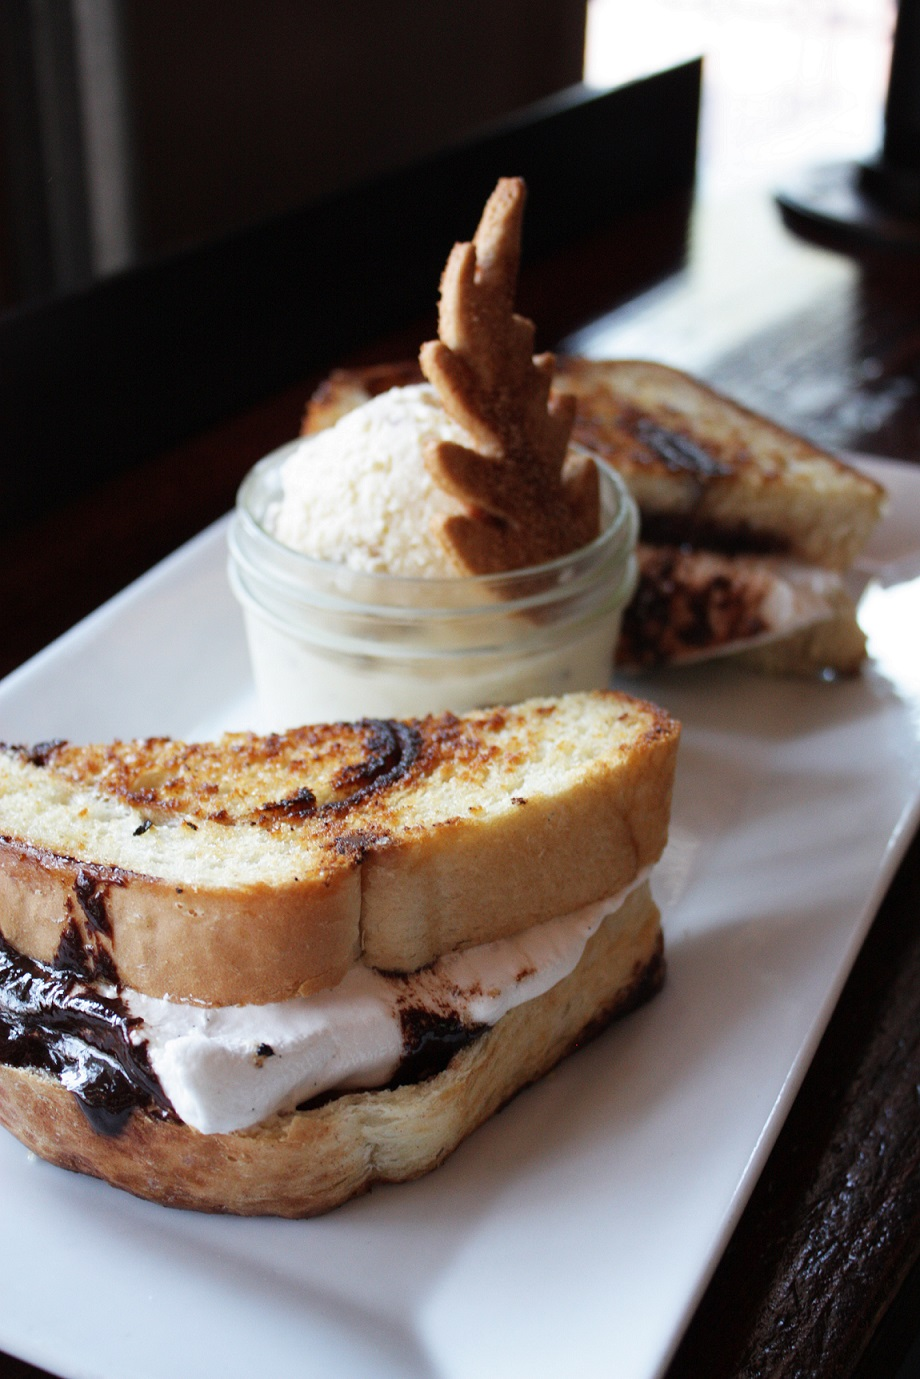 S'More Sandwich from Barleymash